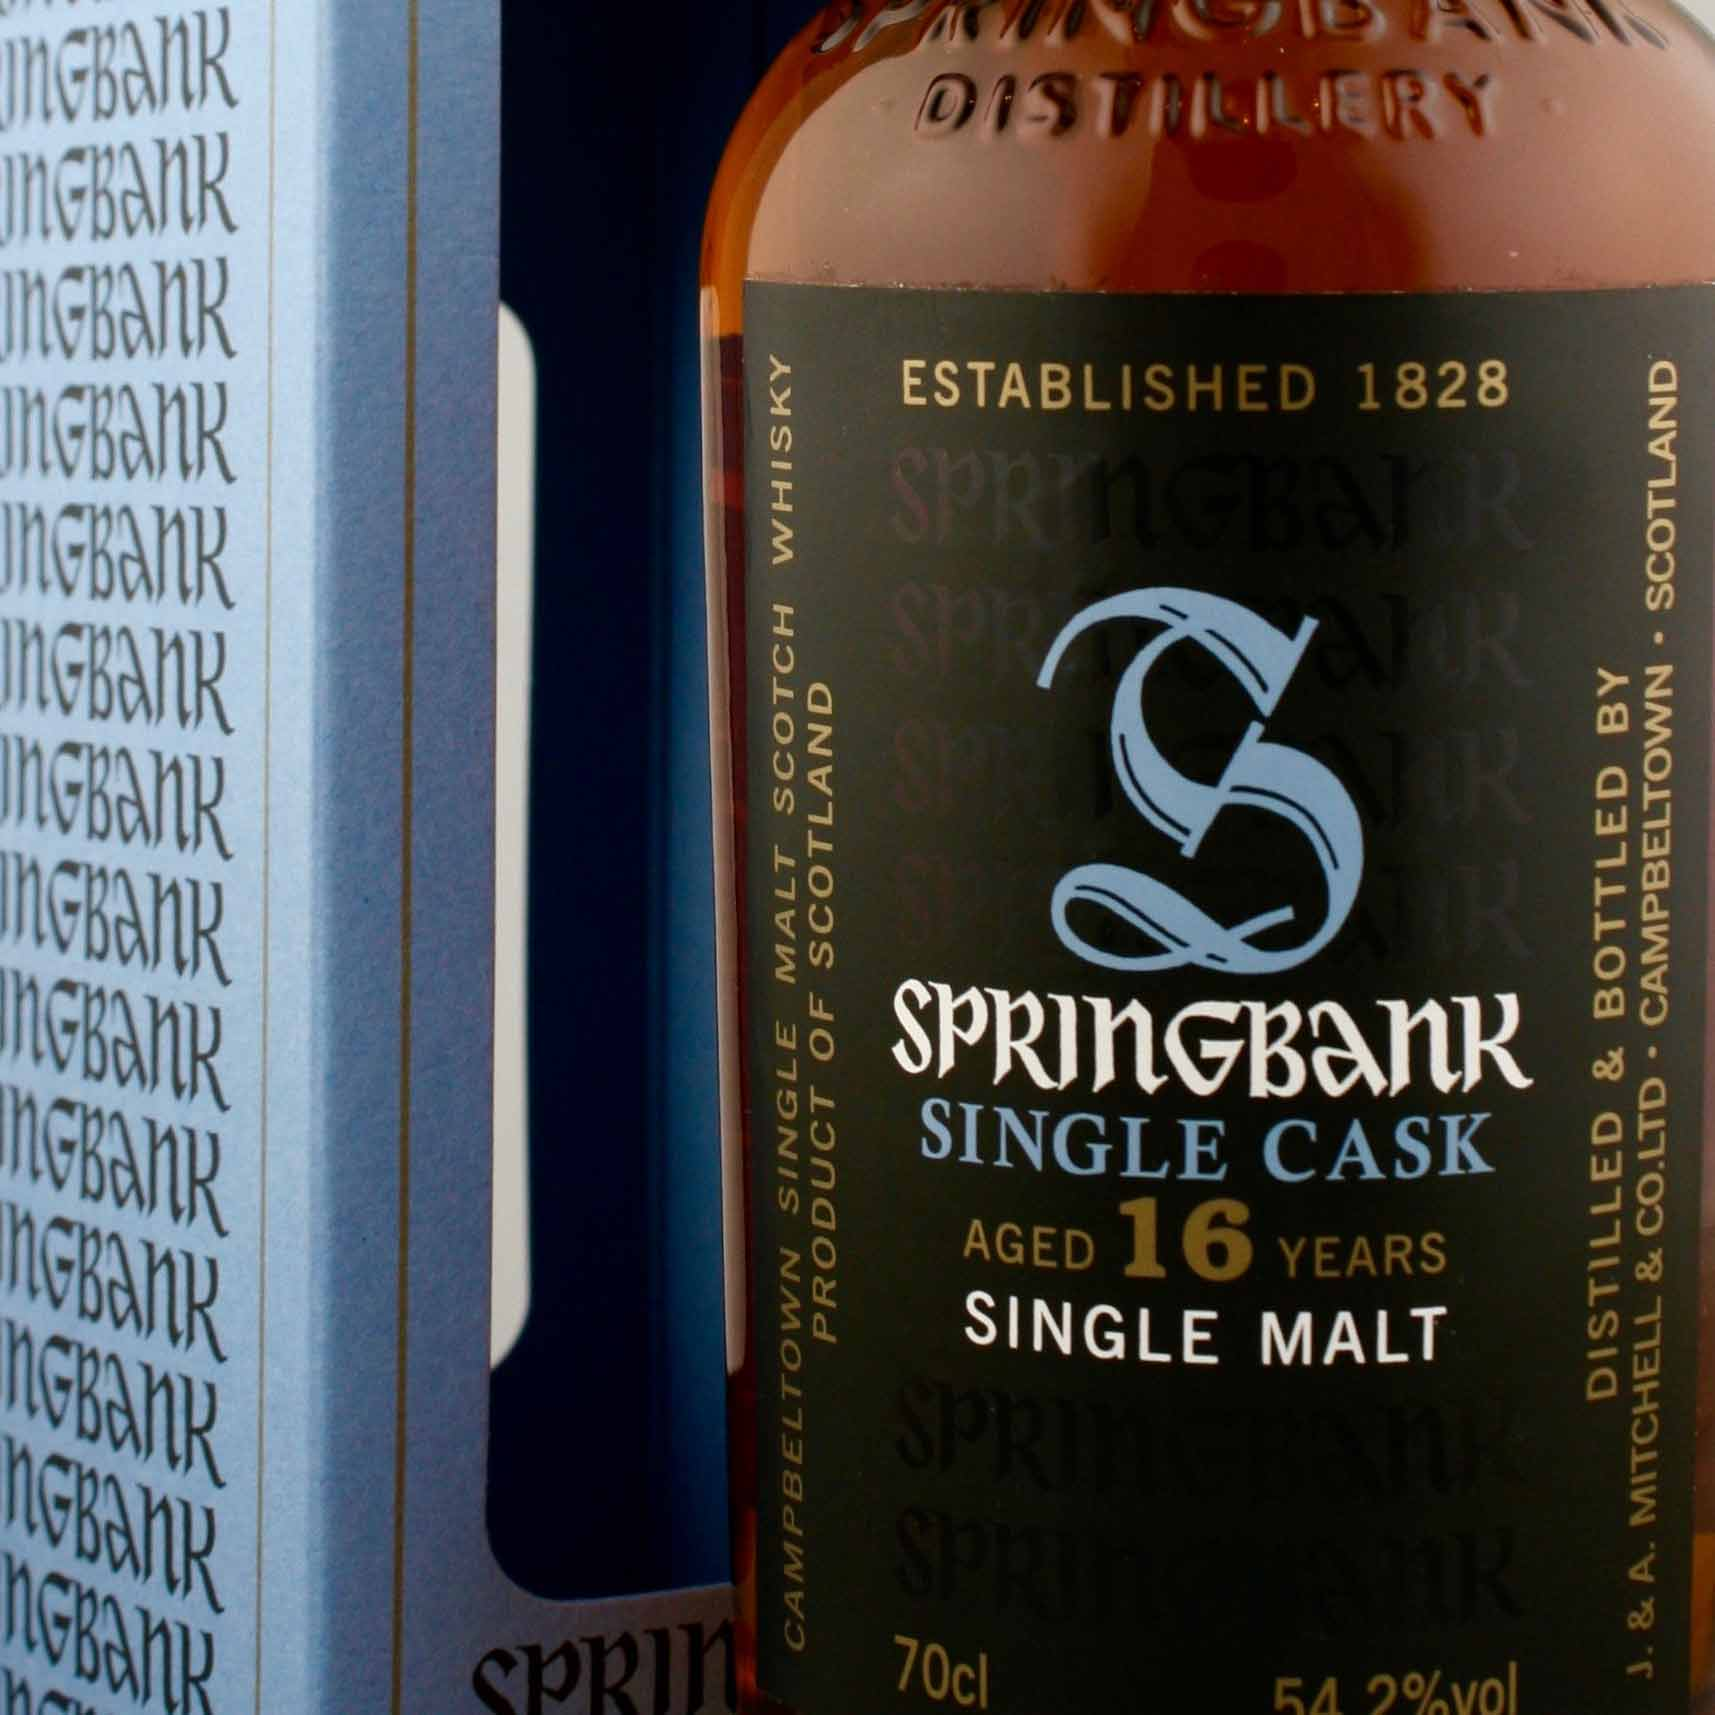 Springbank 16 Year Old Sherry Cask